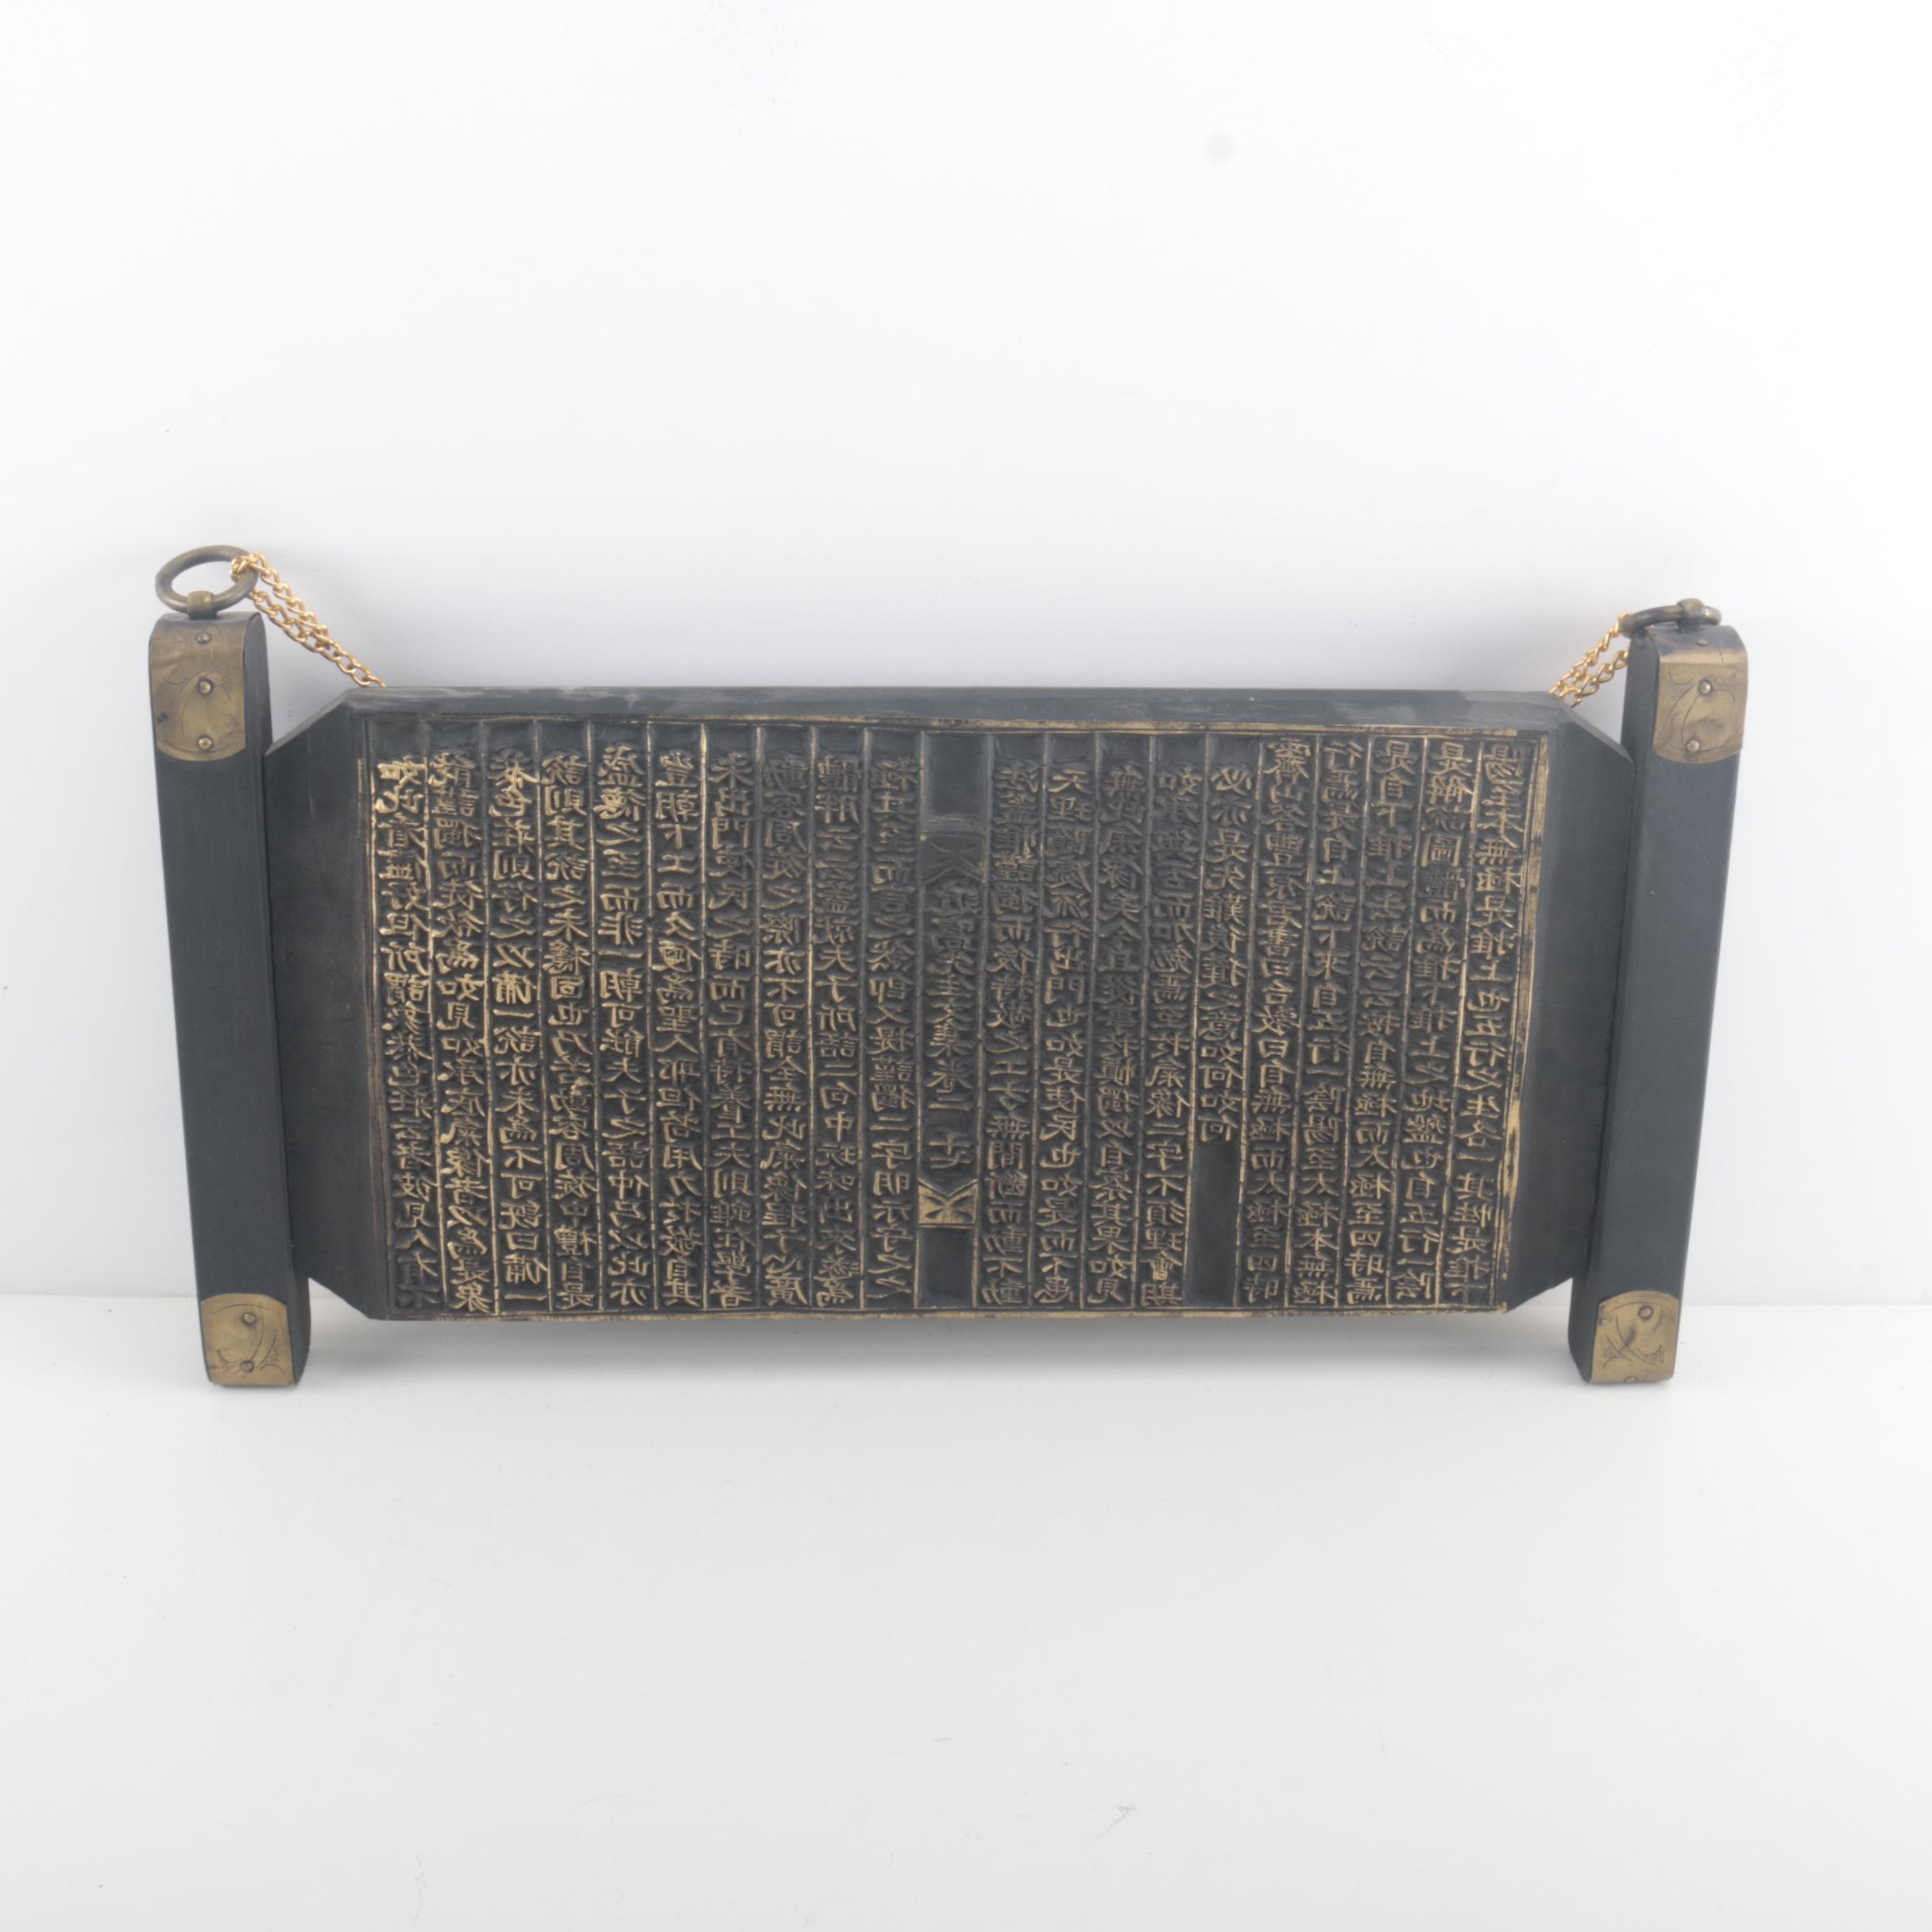 Black and Brass Embossed Decorative Chinese Printing Block